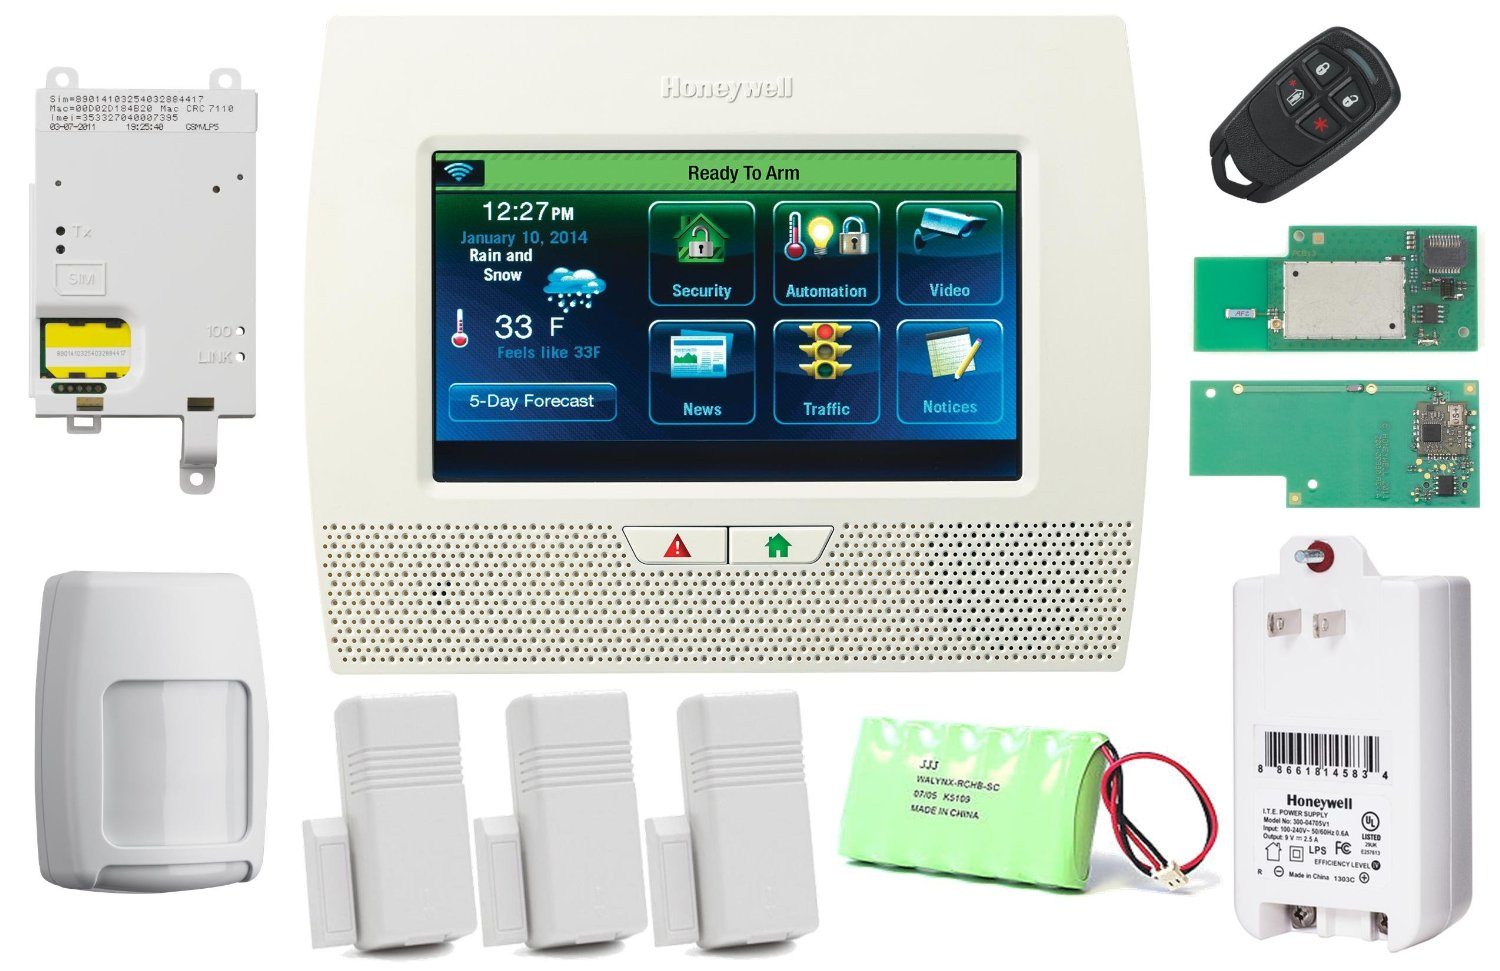 Honeywell Lynx Touch L7000 Wi-Fi Home Security Alarm Reviews,